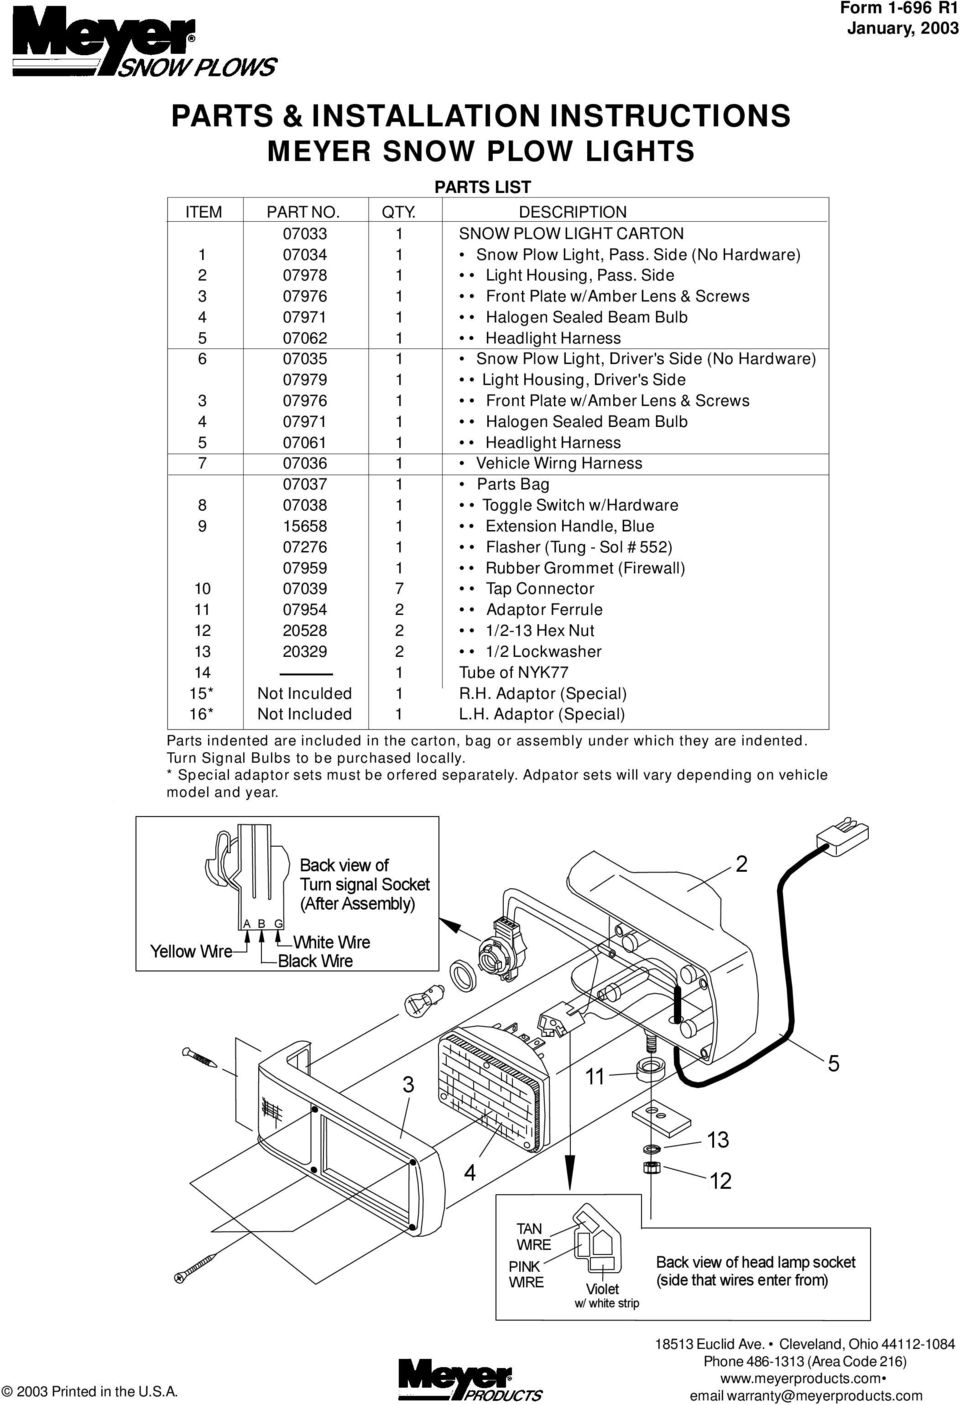 Parts Installation Instructions Meyer Snow Plow Lights Pdf 8 Wire Turn Signal Wiring Diagram Side 3 07976 1 Front Plate W Amber Lens Screws 4 07971 Halogen